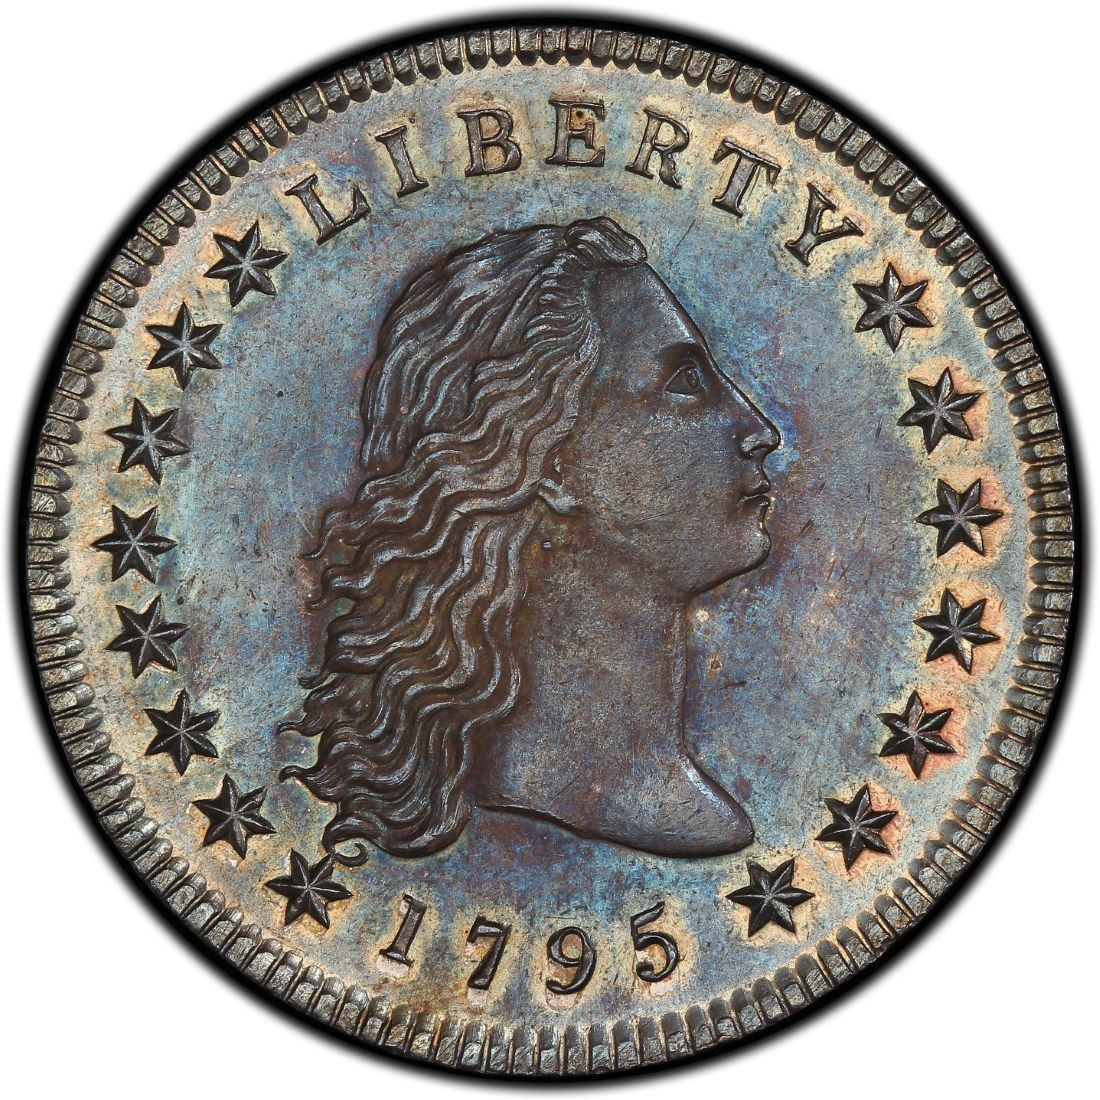 1795 Flowing Hair Silver Dollar Values And Prices Past